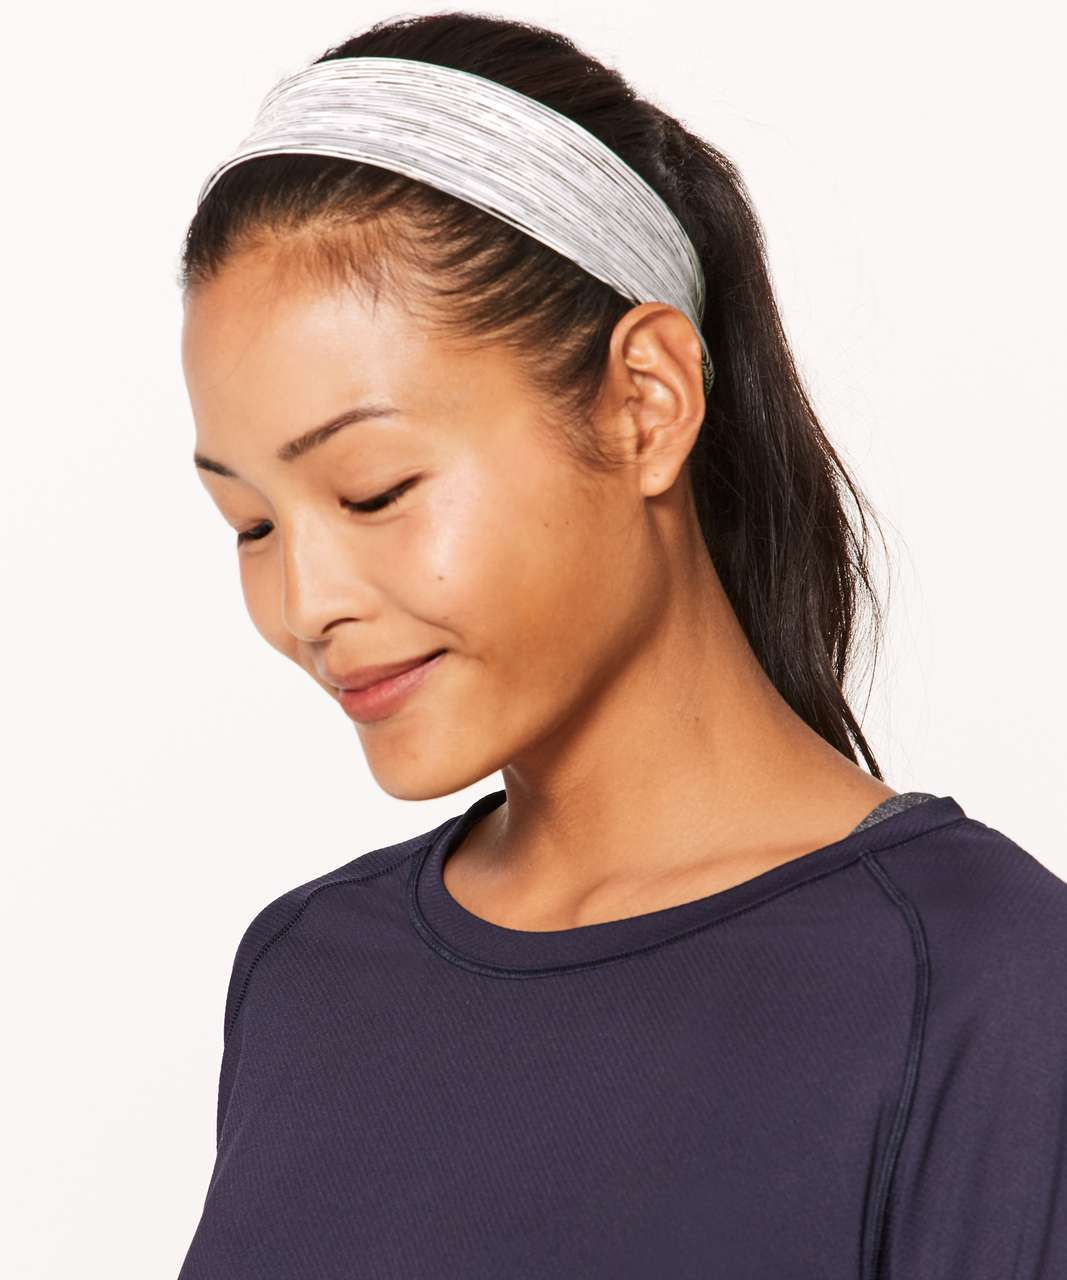 Lululemon Fly Away Tamer Headband II *Luxtreme - Wee Are From Space Ice Grey Alpine White